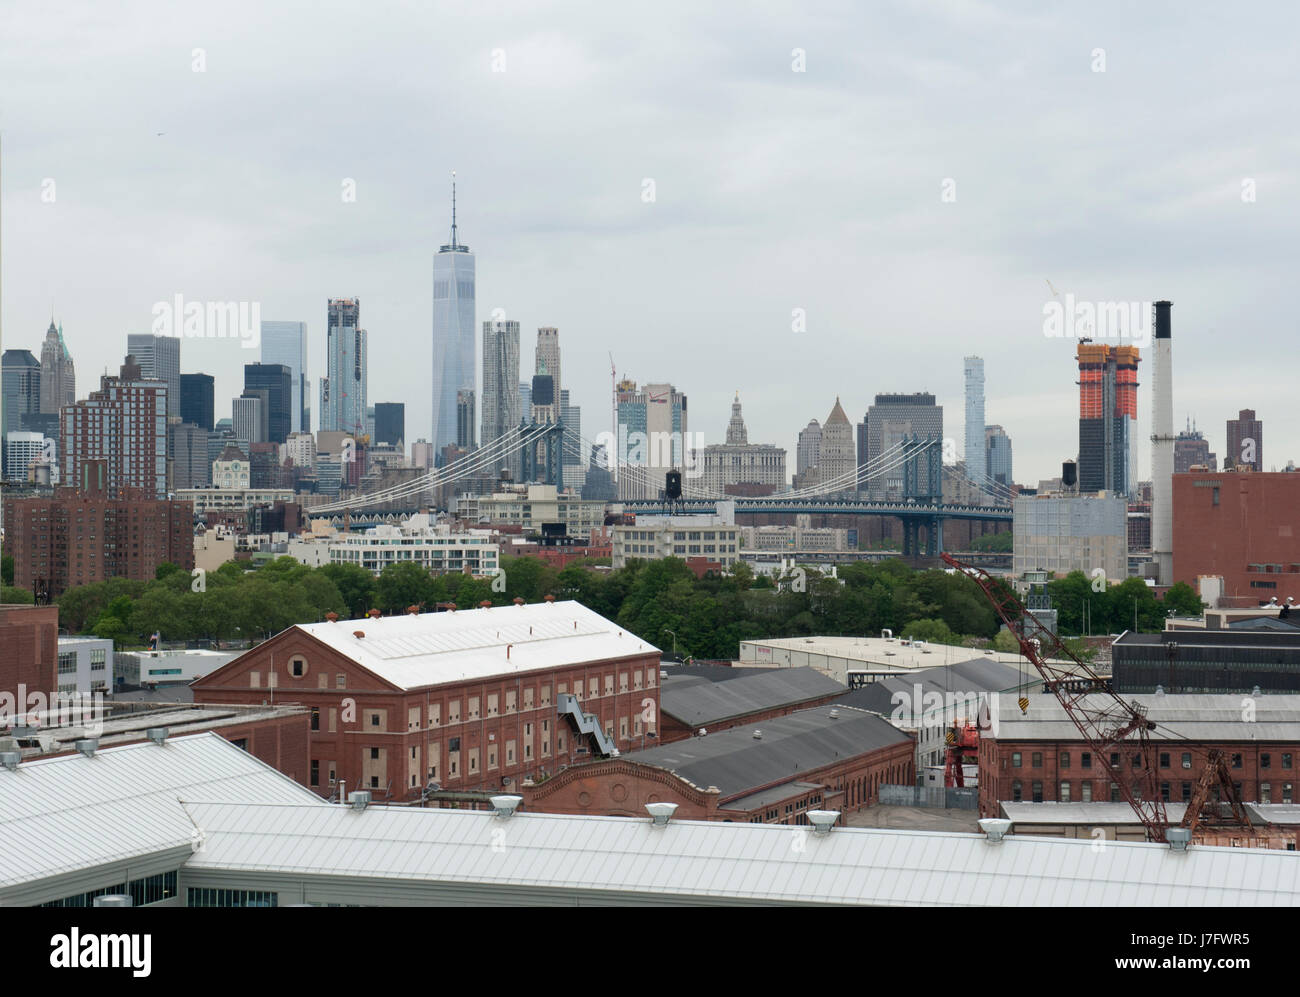 The Brooklyn Navy Yard in the foreground with the Lower Manhattan skyline behind it. The 300-acre Navy Yard had Stock Photo